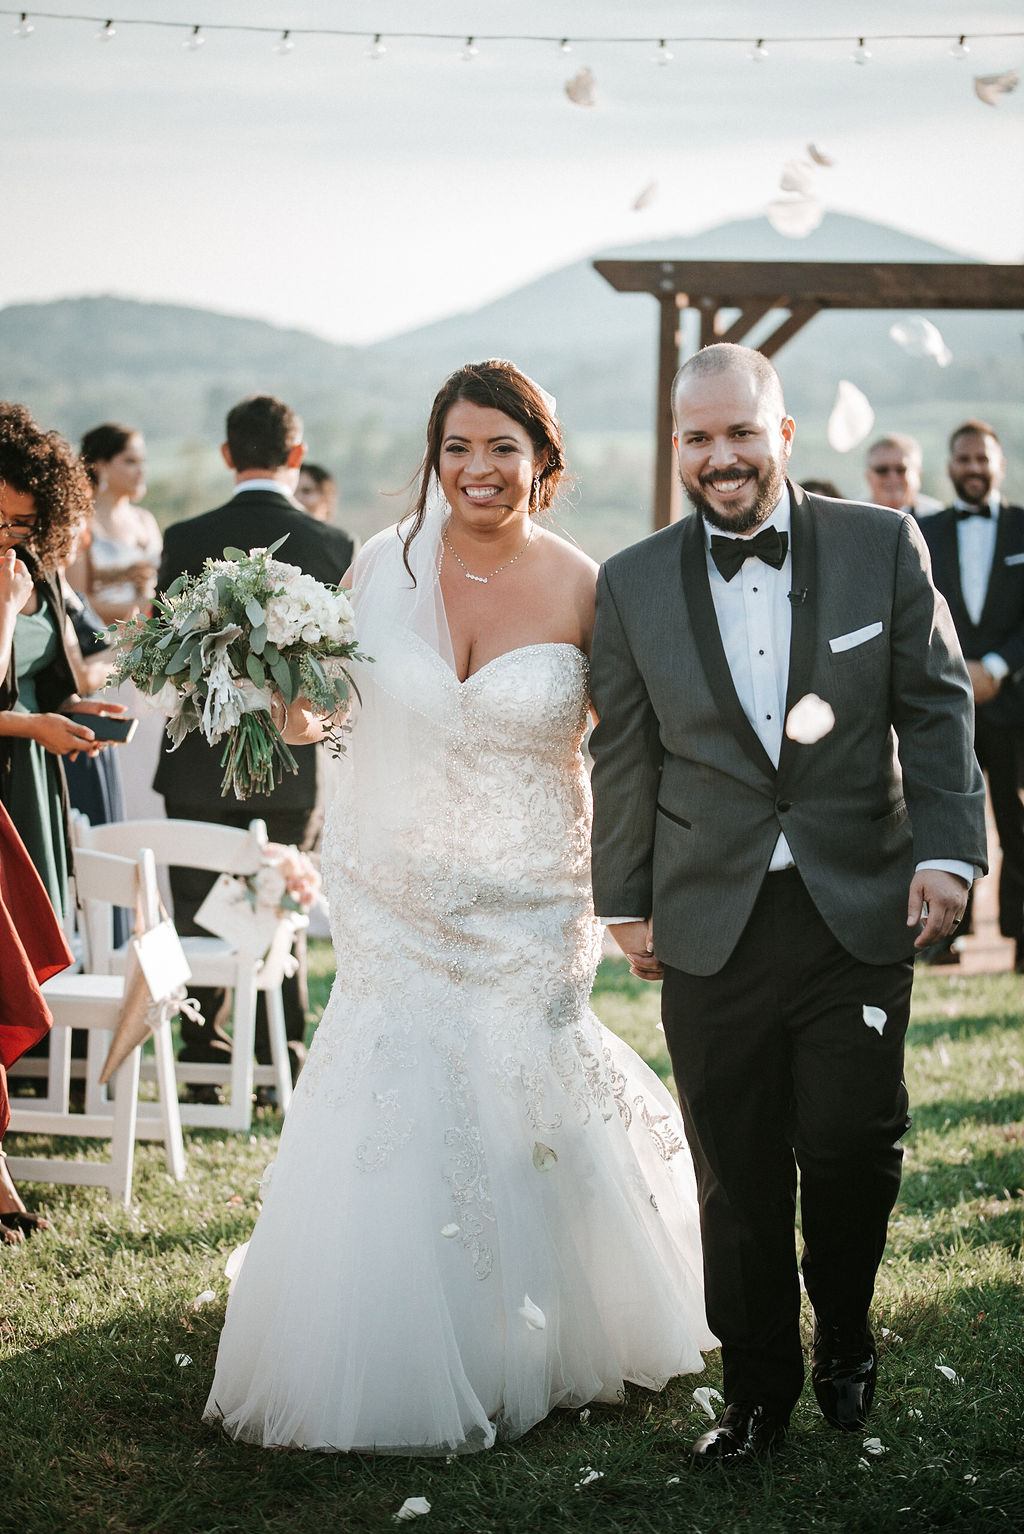 Bride and Groom smiling as they walk up the aisle at Blue Valley Vineyard